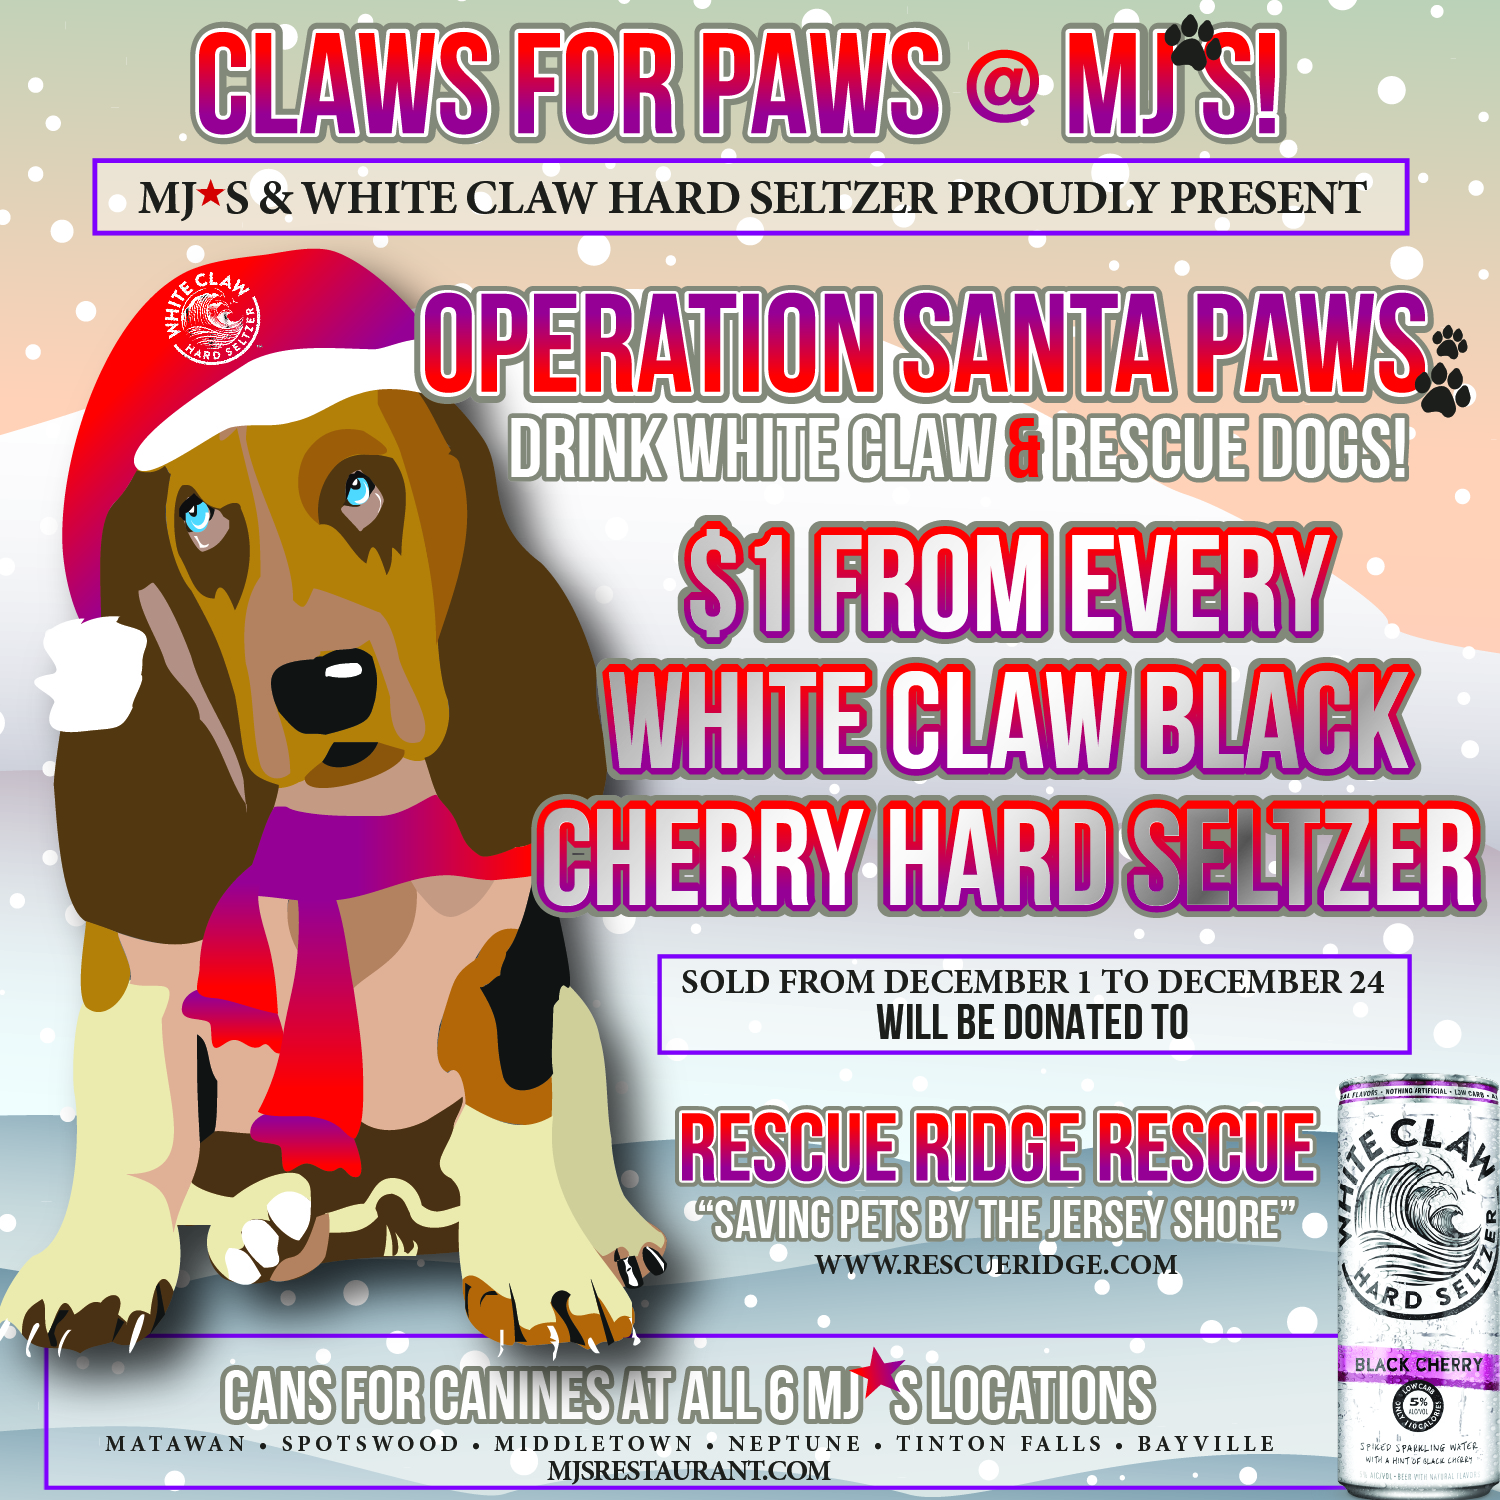 Claws for Paws at MJ's